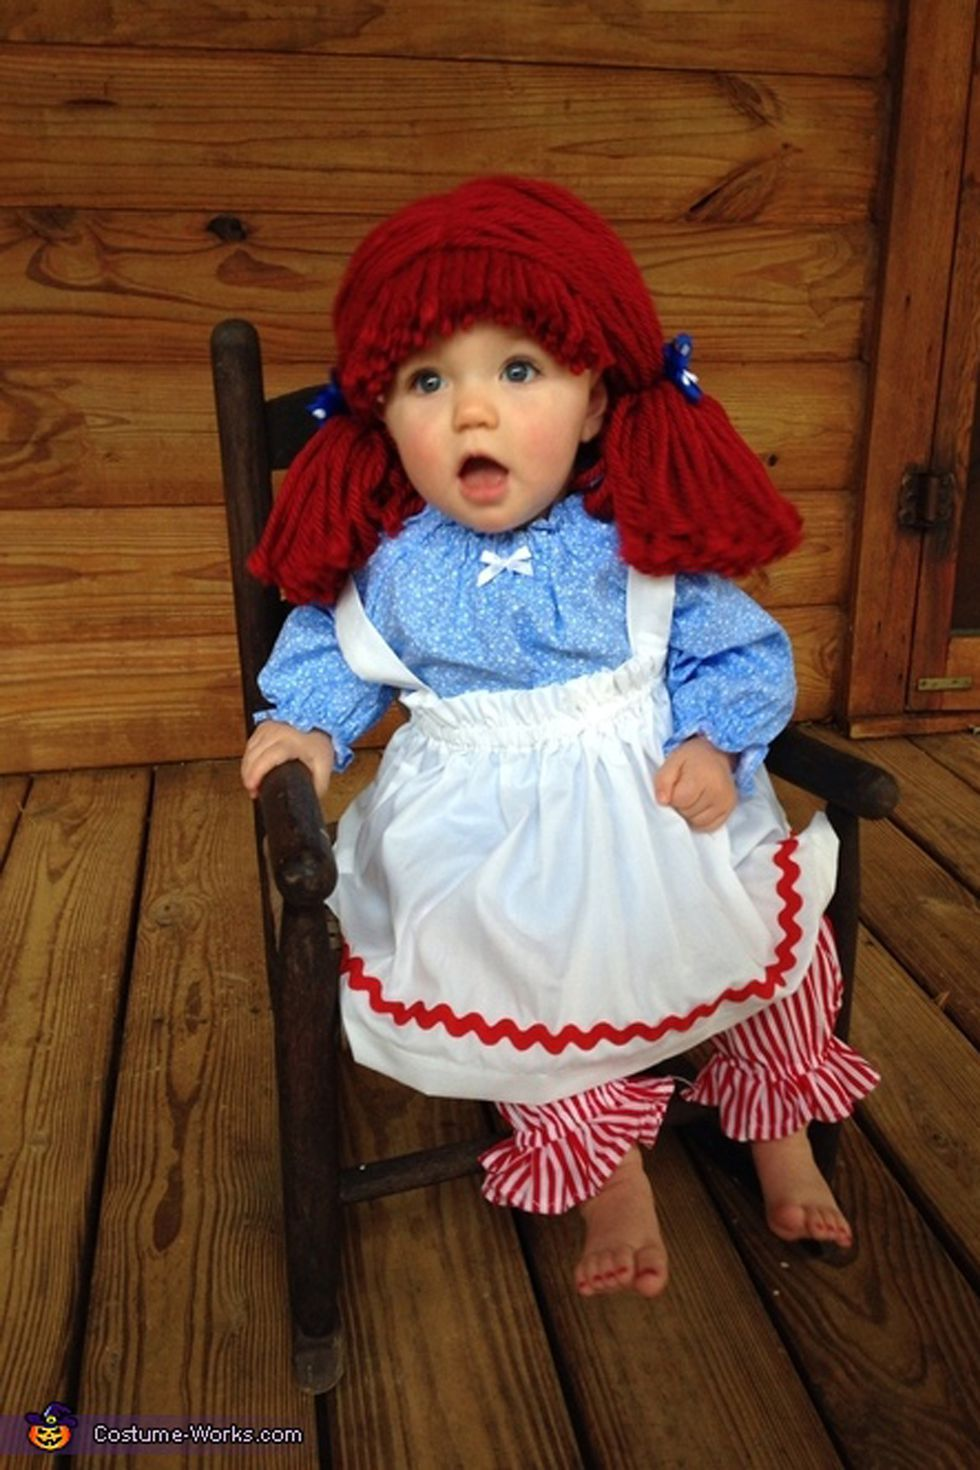 Baby Halloween Costumes Boy And Girl.These Baby Halloween Costumes Are Too Cute To Handle